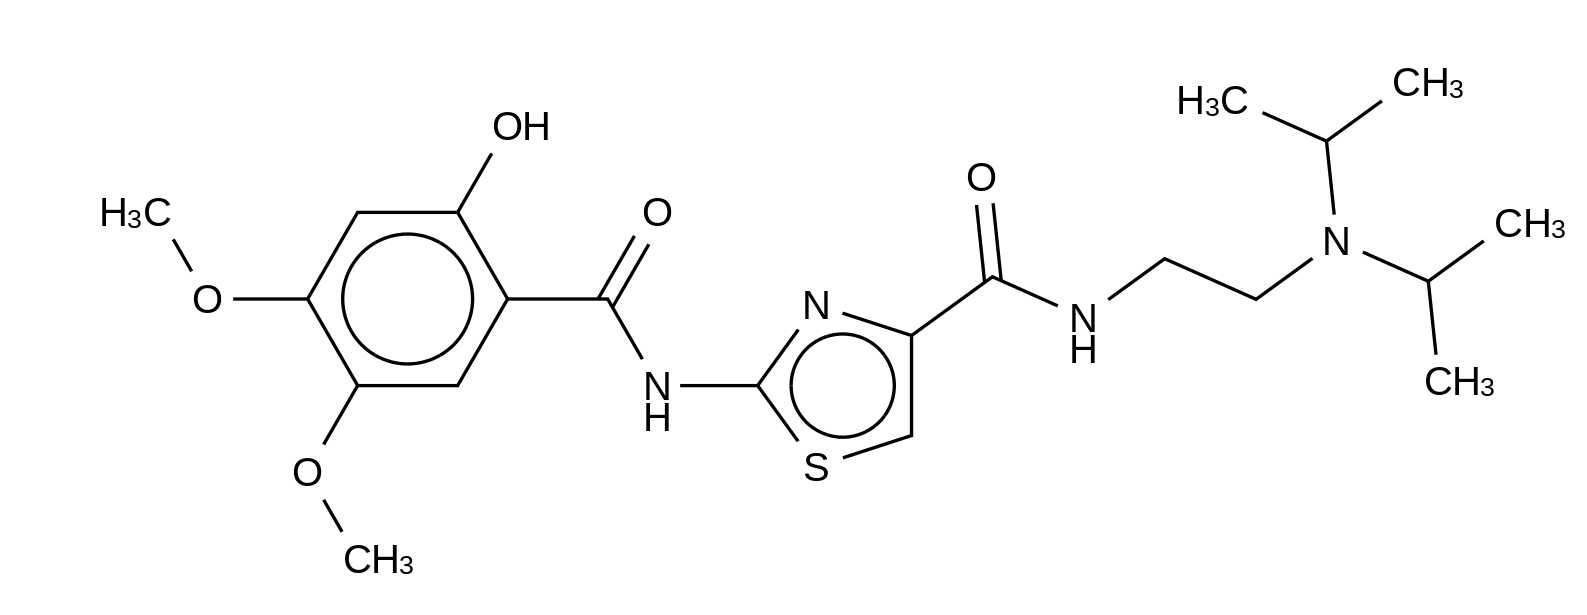 Acotiamide HCl